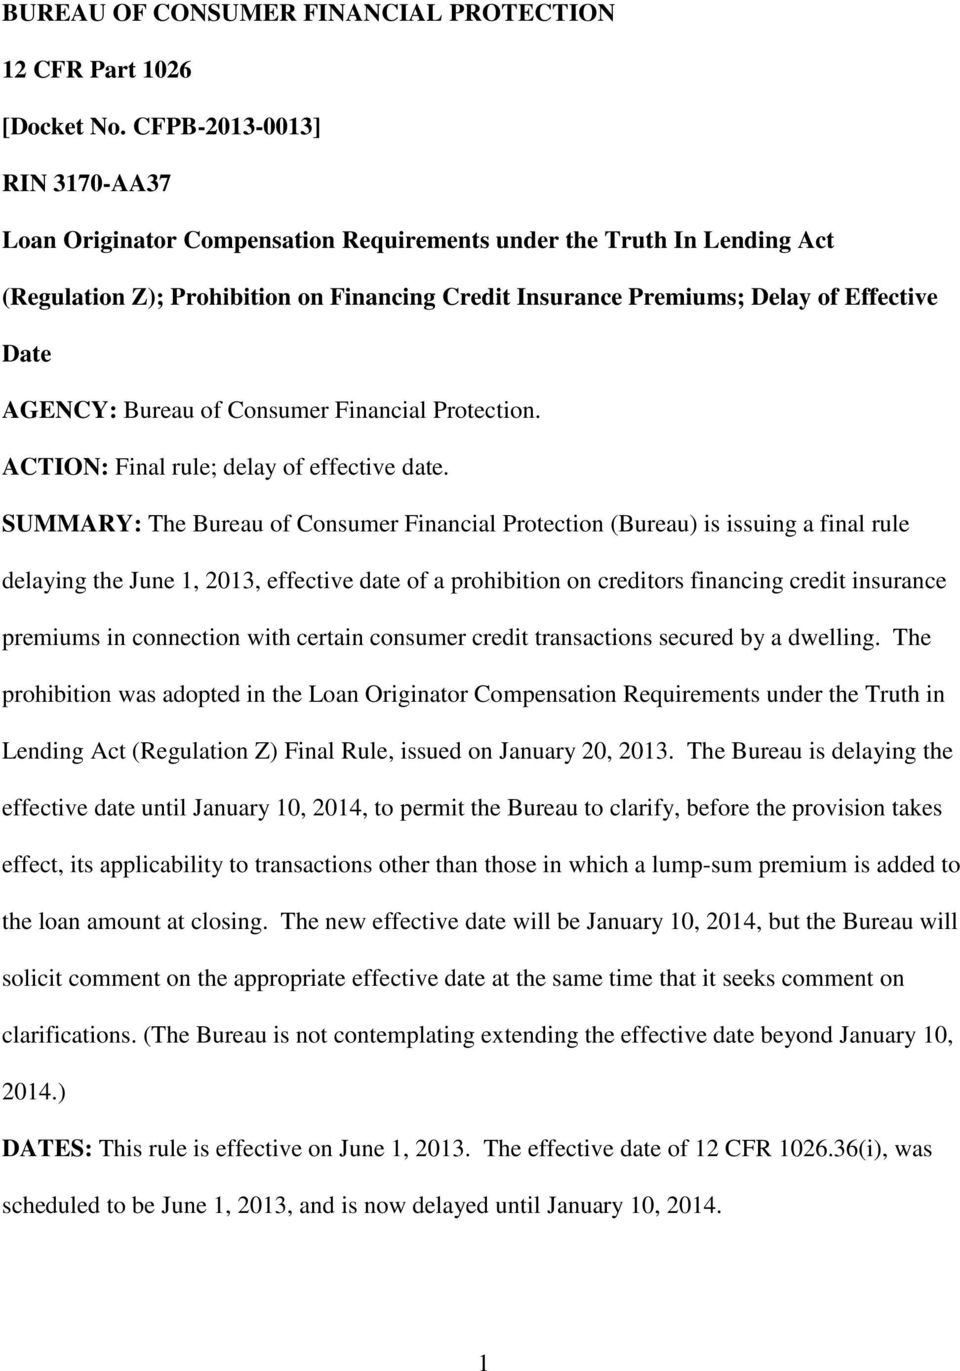 AGENCY: Bureau of Consumer Financial Protection. ACTION: Final rule; delay of effective date.